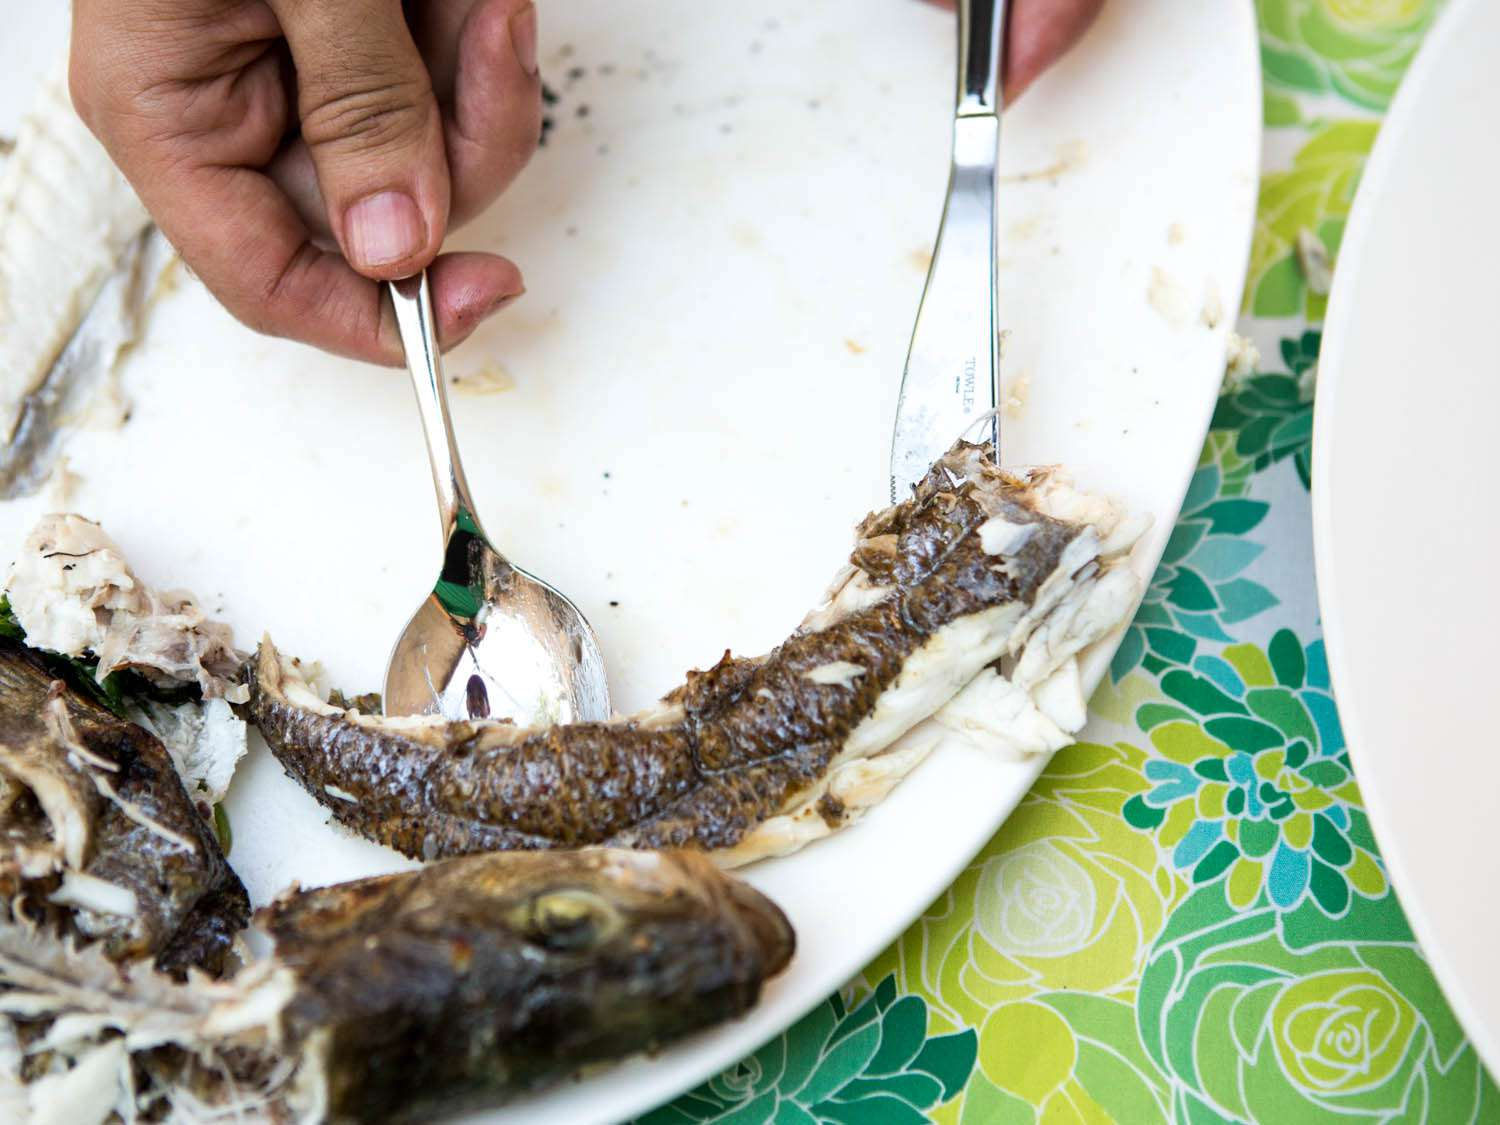 20140708-how-to-serve-whole-fish-vicky-wasik-31.jpg